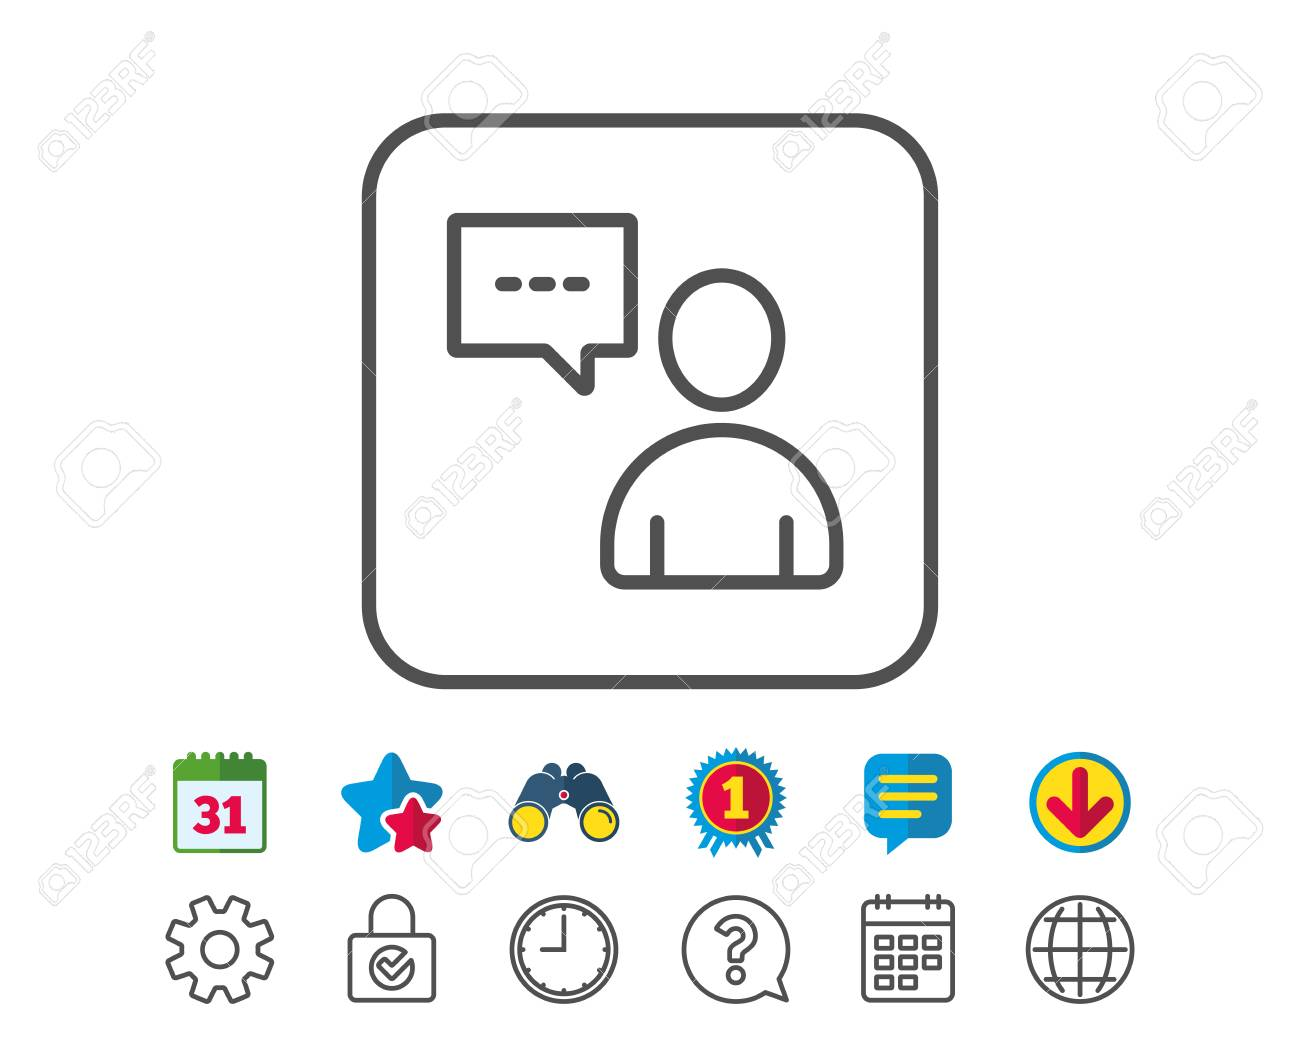 User Communication Line Icon Person With Chat Speech Bubble